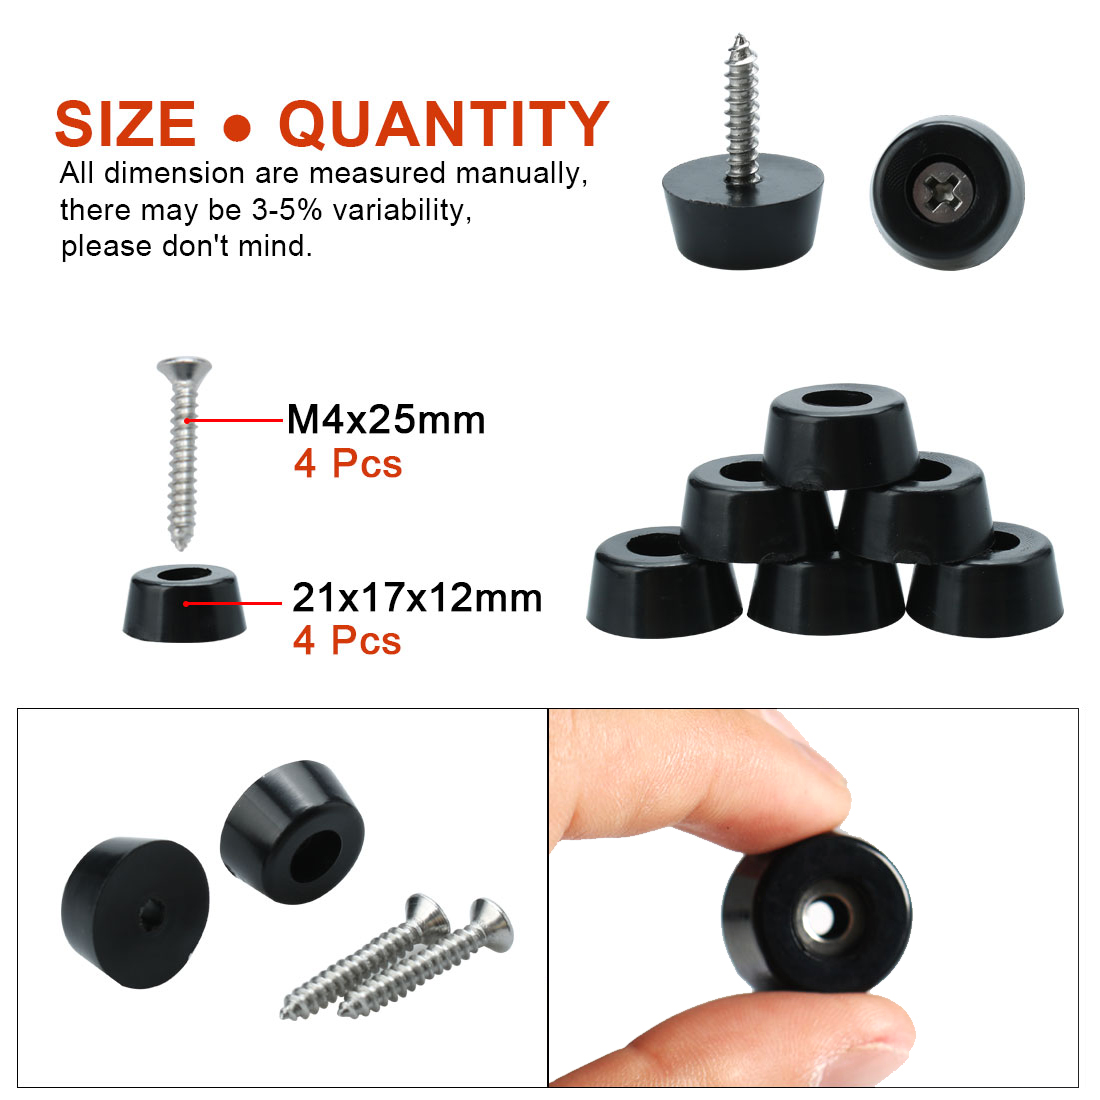 4pcs Rubber Feet Bumper Furniture with Metal Washer and Screws, D21x17xH12mm - image 2 de 7